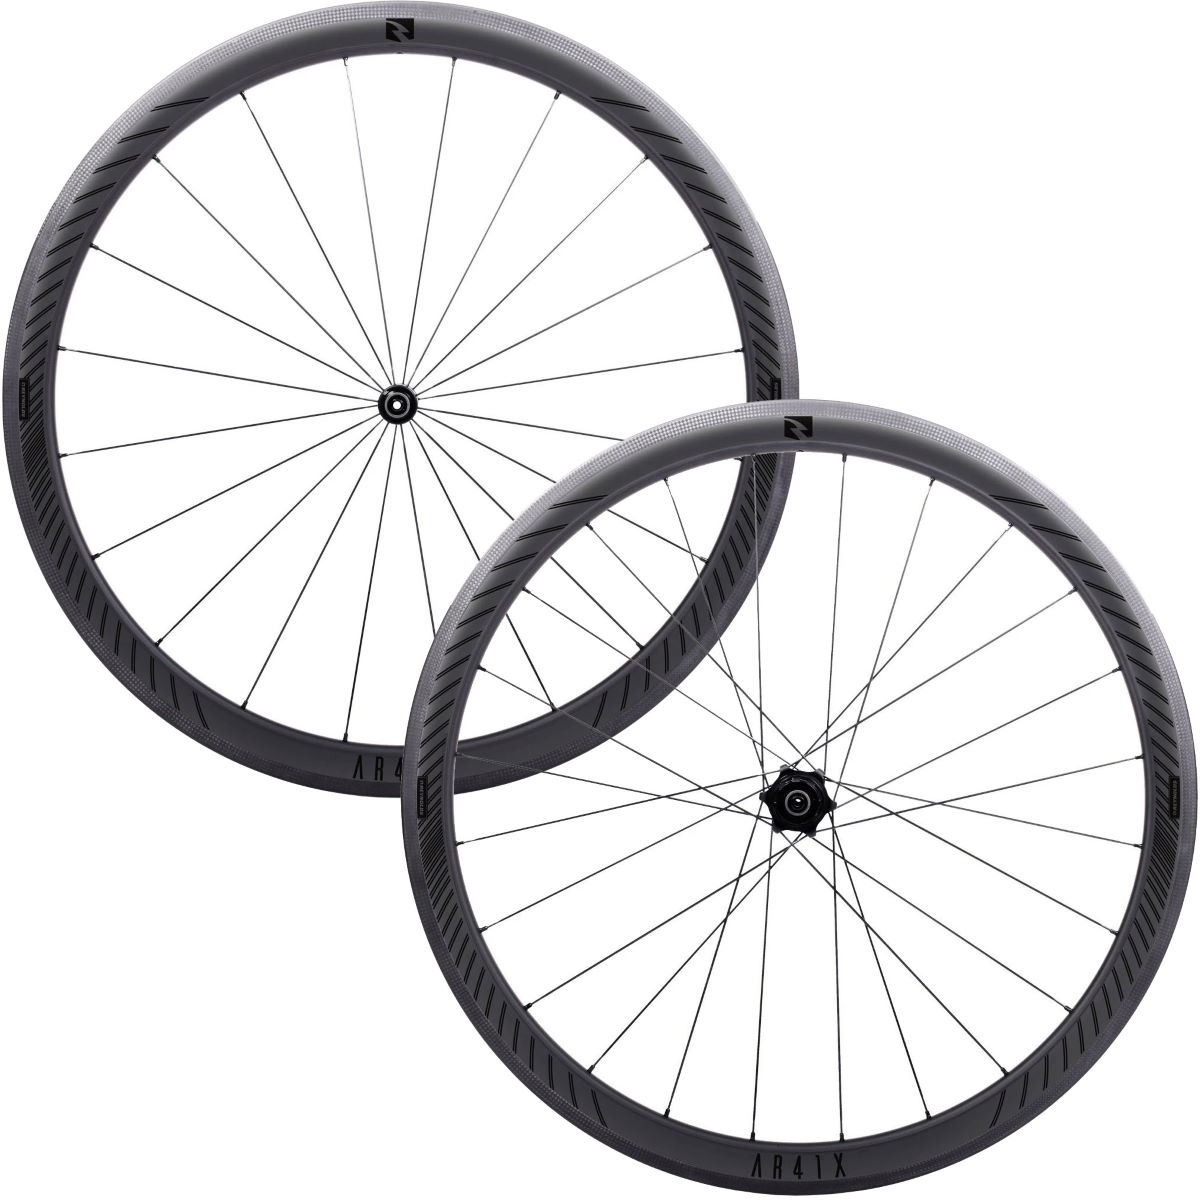 Reynolds Reynolds ARX 41 Carbon Wheelset   Wheel Sets